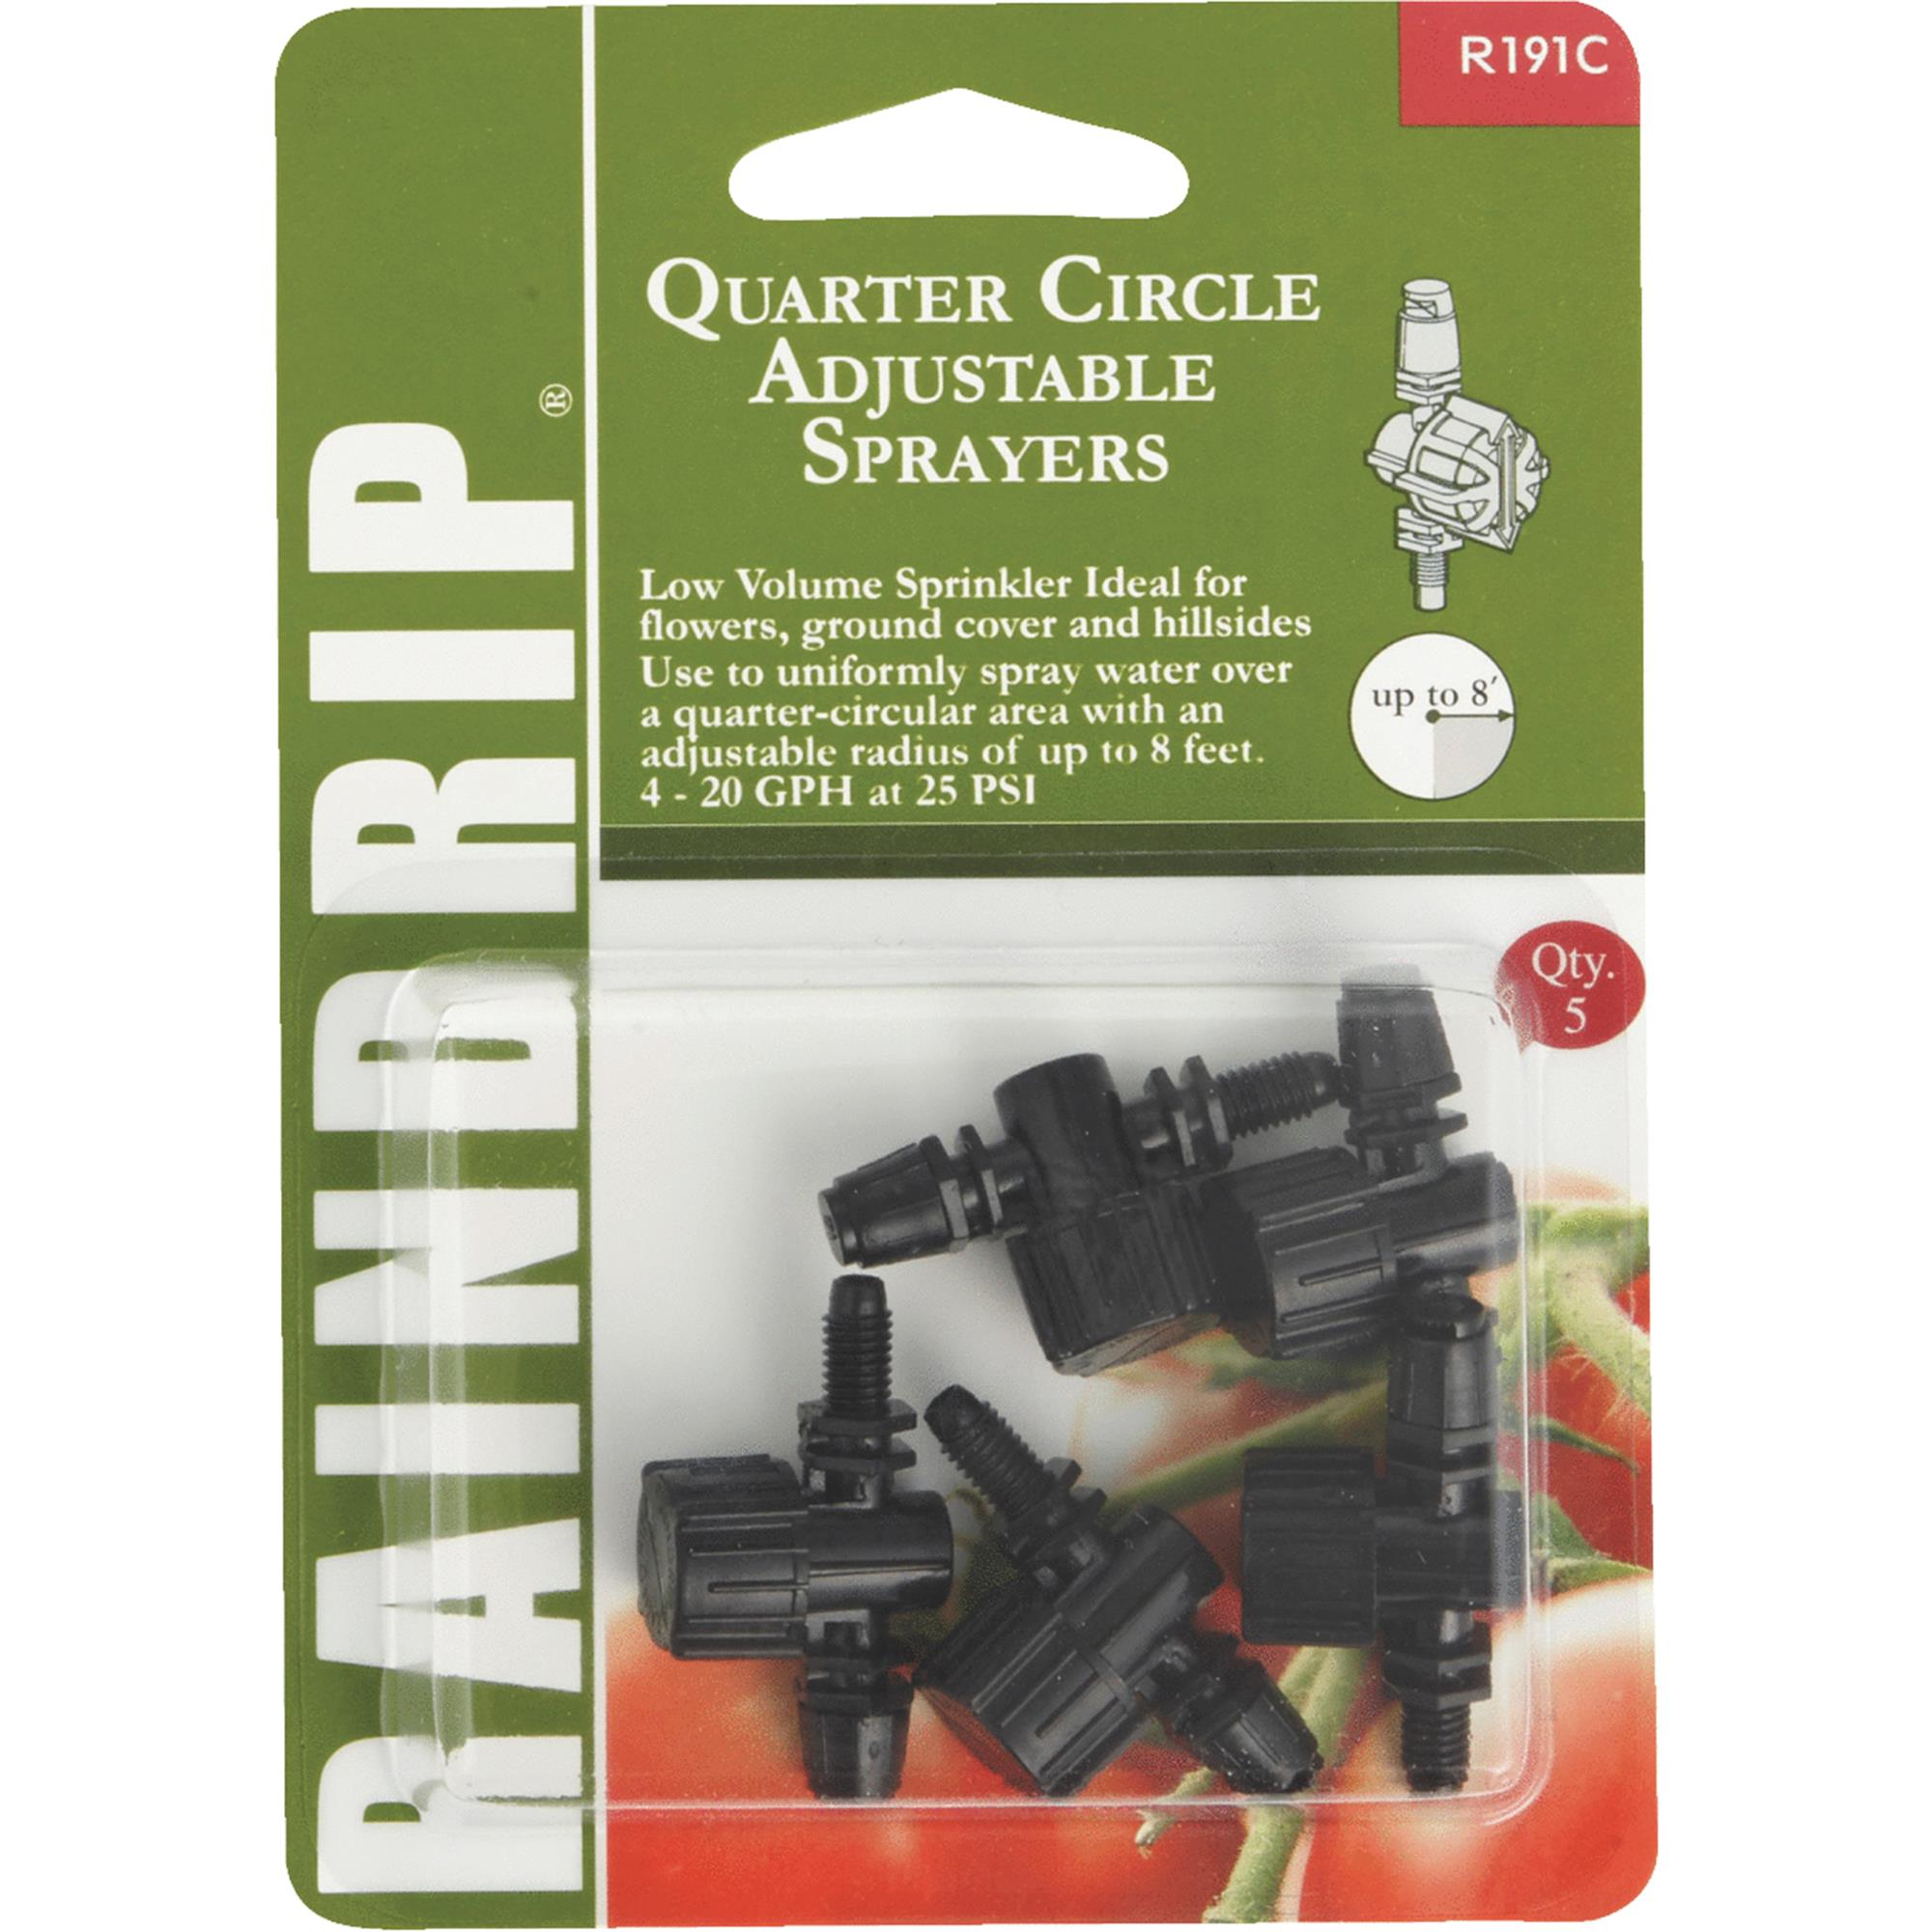 Raindrip Adjustable Sprayer